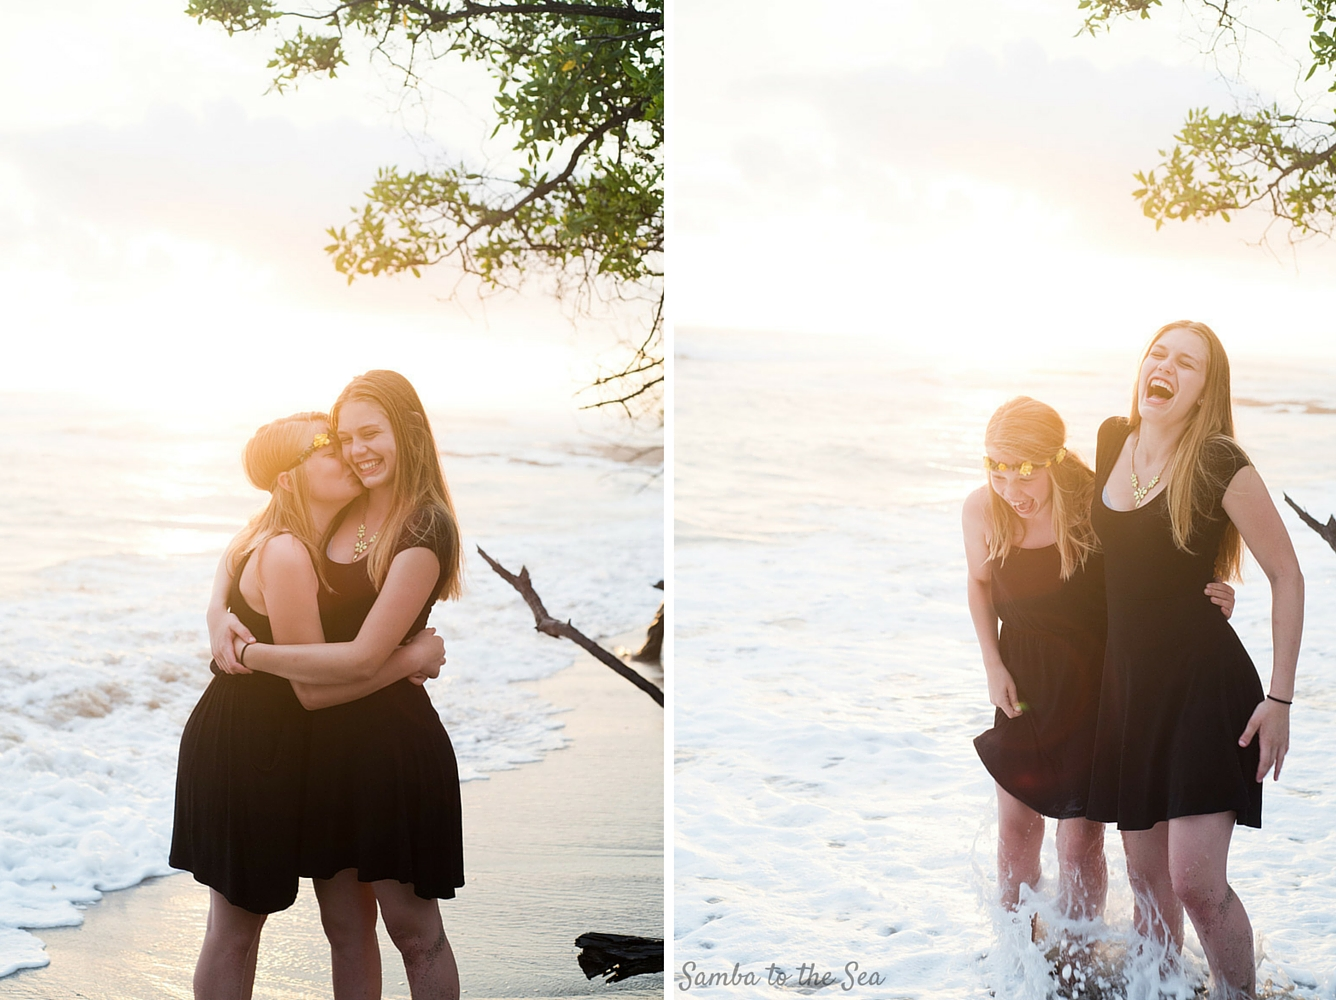 Sisters on the beach in Costa Rica. Photographed by Kristen M. Brown, Samba to the Sea Photography.